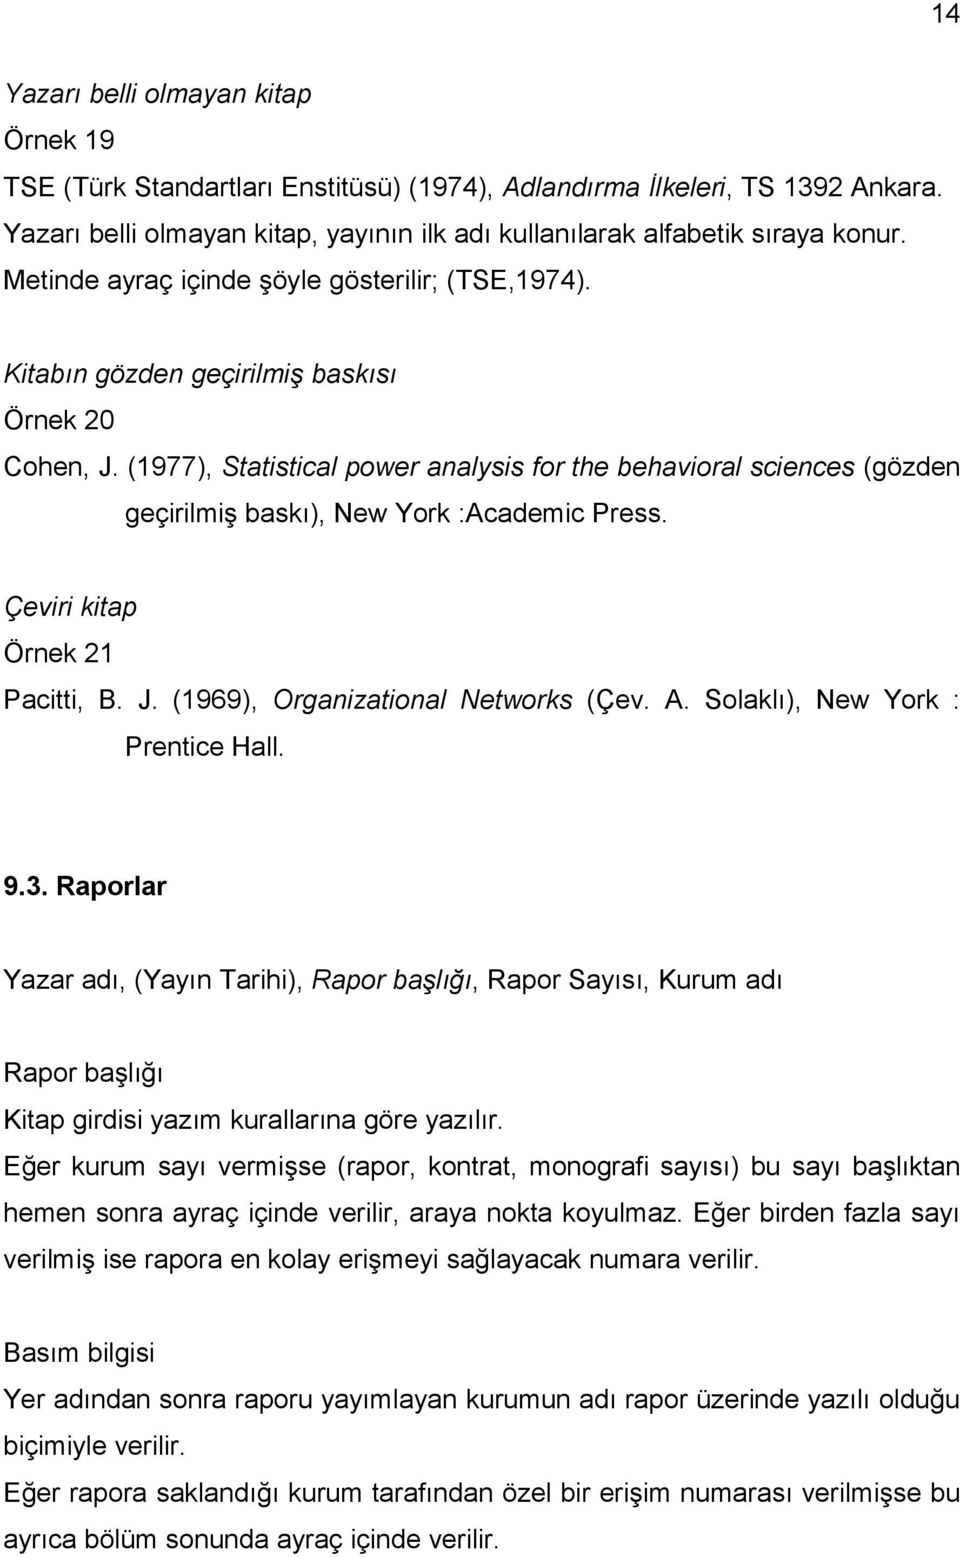 (1977), Statistical power analysis for the behavioral sciences (gözden geçirilmiş baskı), New York :Academic Press. Çeviri kitap Örnek 21 Pacitti, B. J. (1969), Organizational Networks (Çev. A.